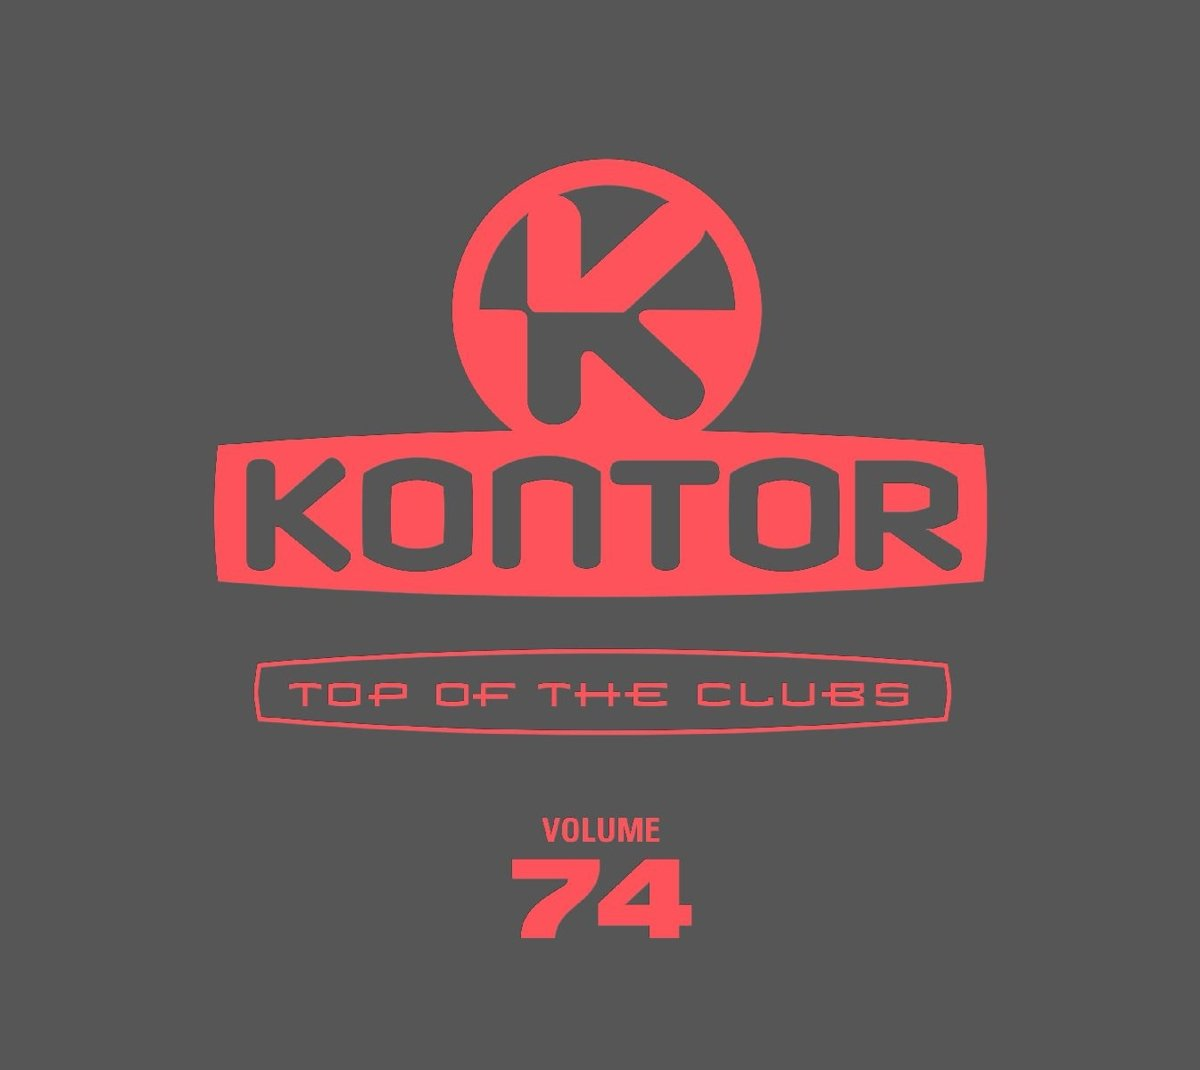 VA - Kontor Top Of The Clubs Volume 74 - REAL REPACK - 3CD - FLAC - 2017 - VOLDiES Download